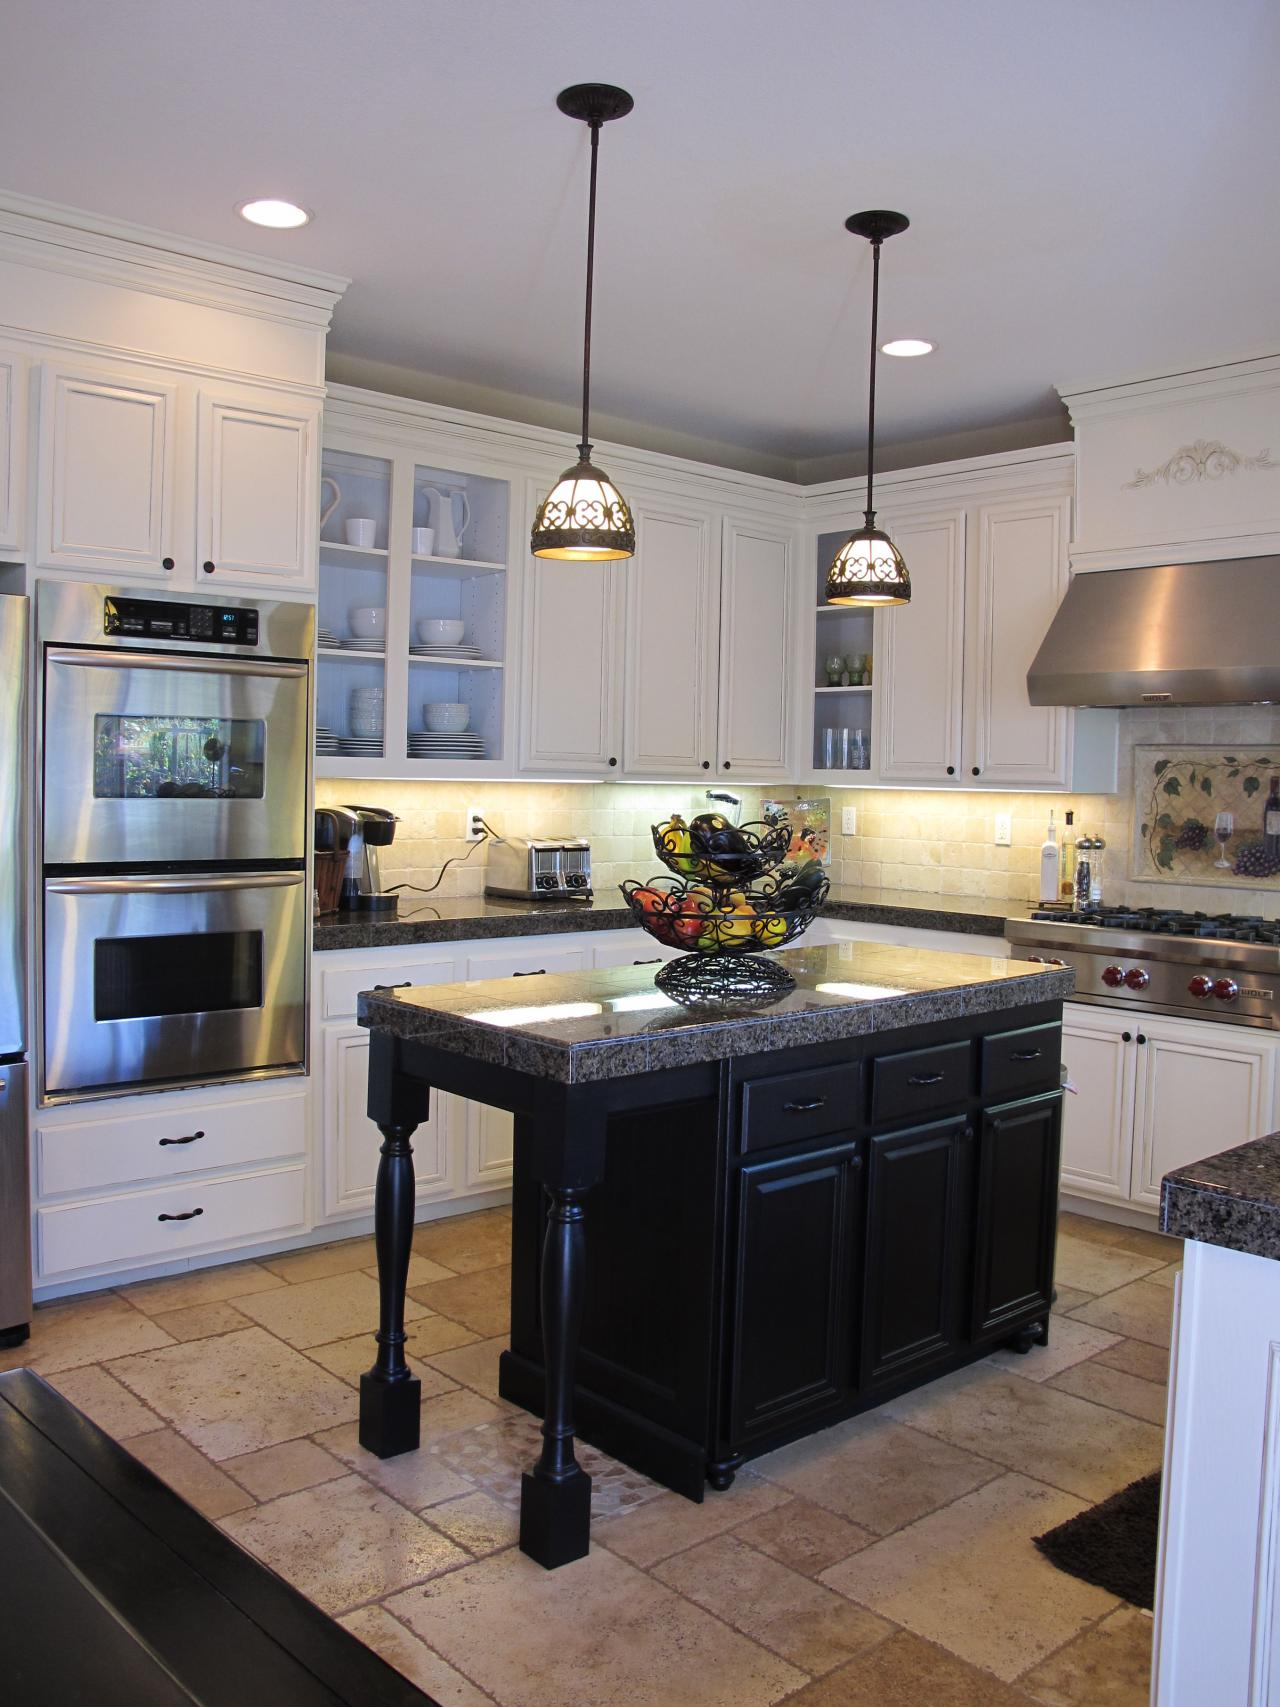 Tags: - Painted Kitchen Cabinet Ideas: Pictures, Options, Tips & Advice HGTV